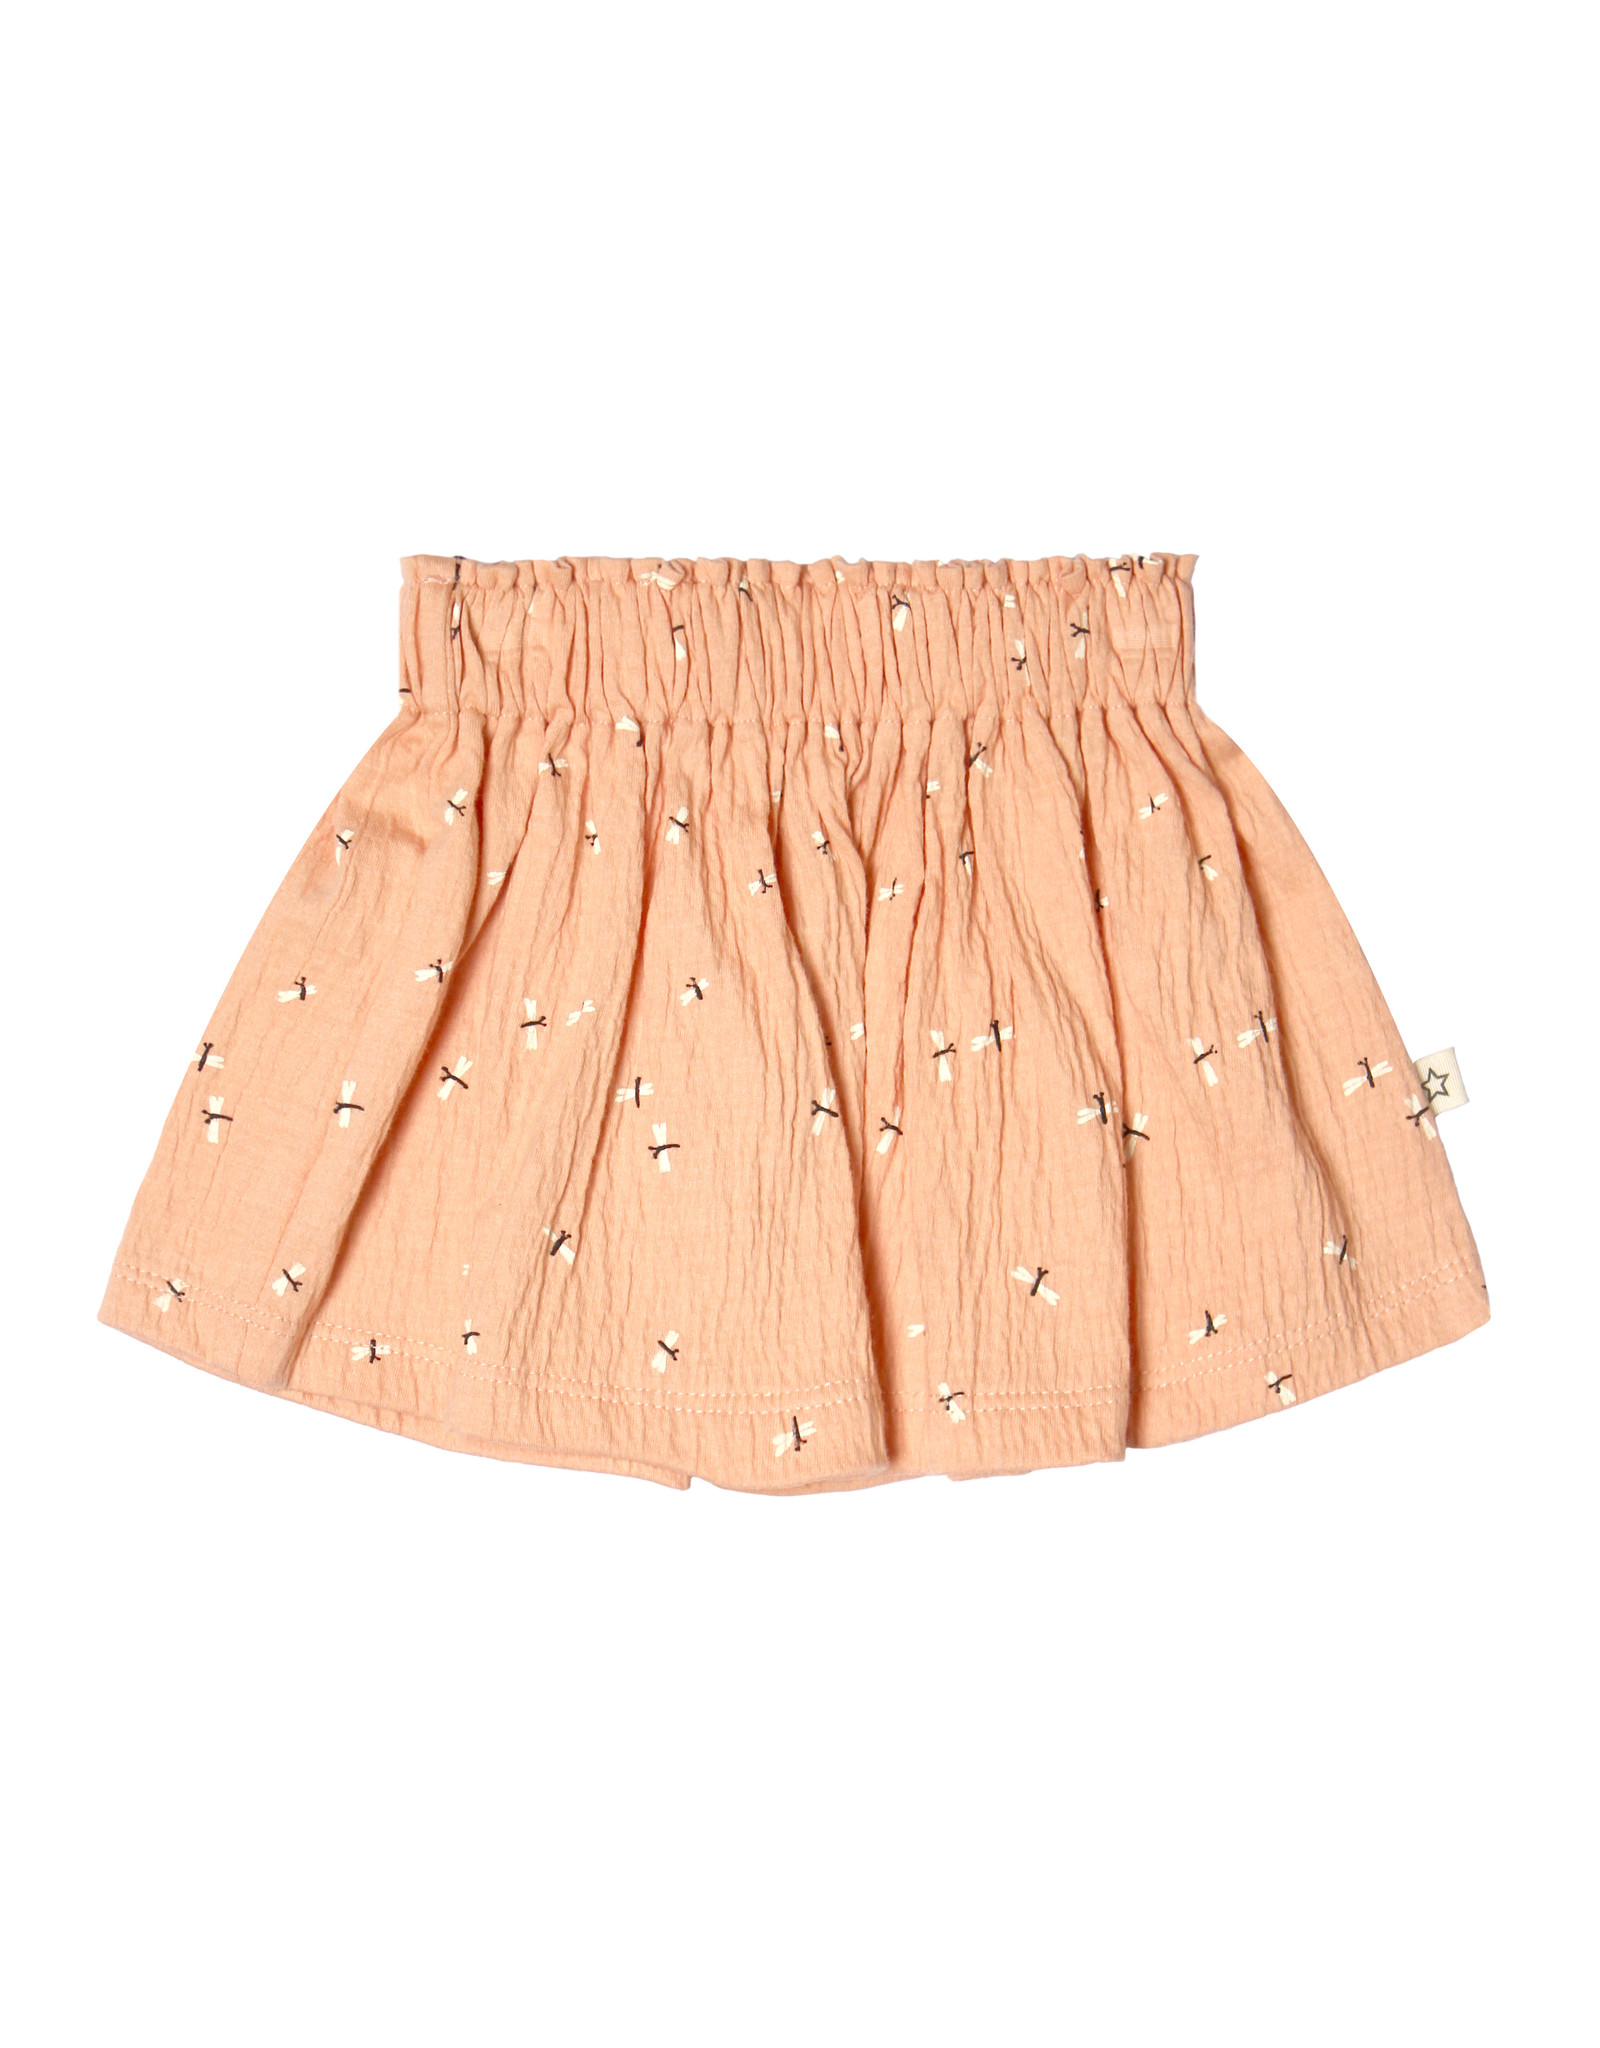 Your Wishes Dragonfly | Skirt Peach